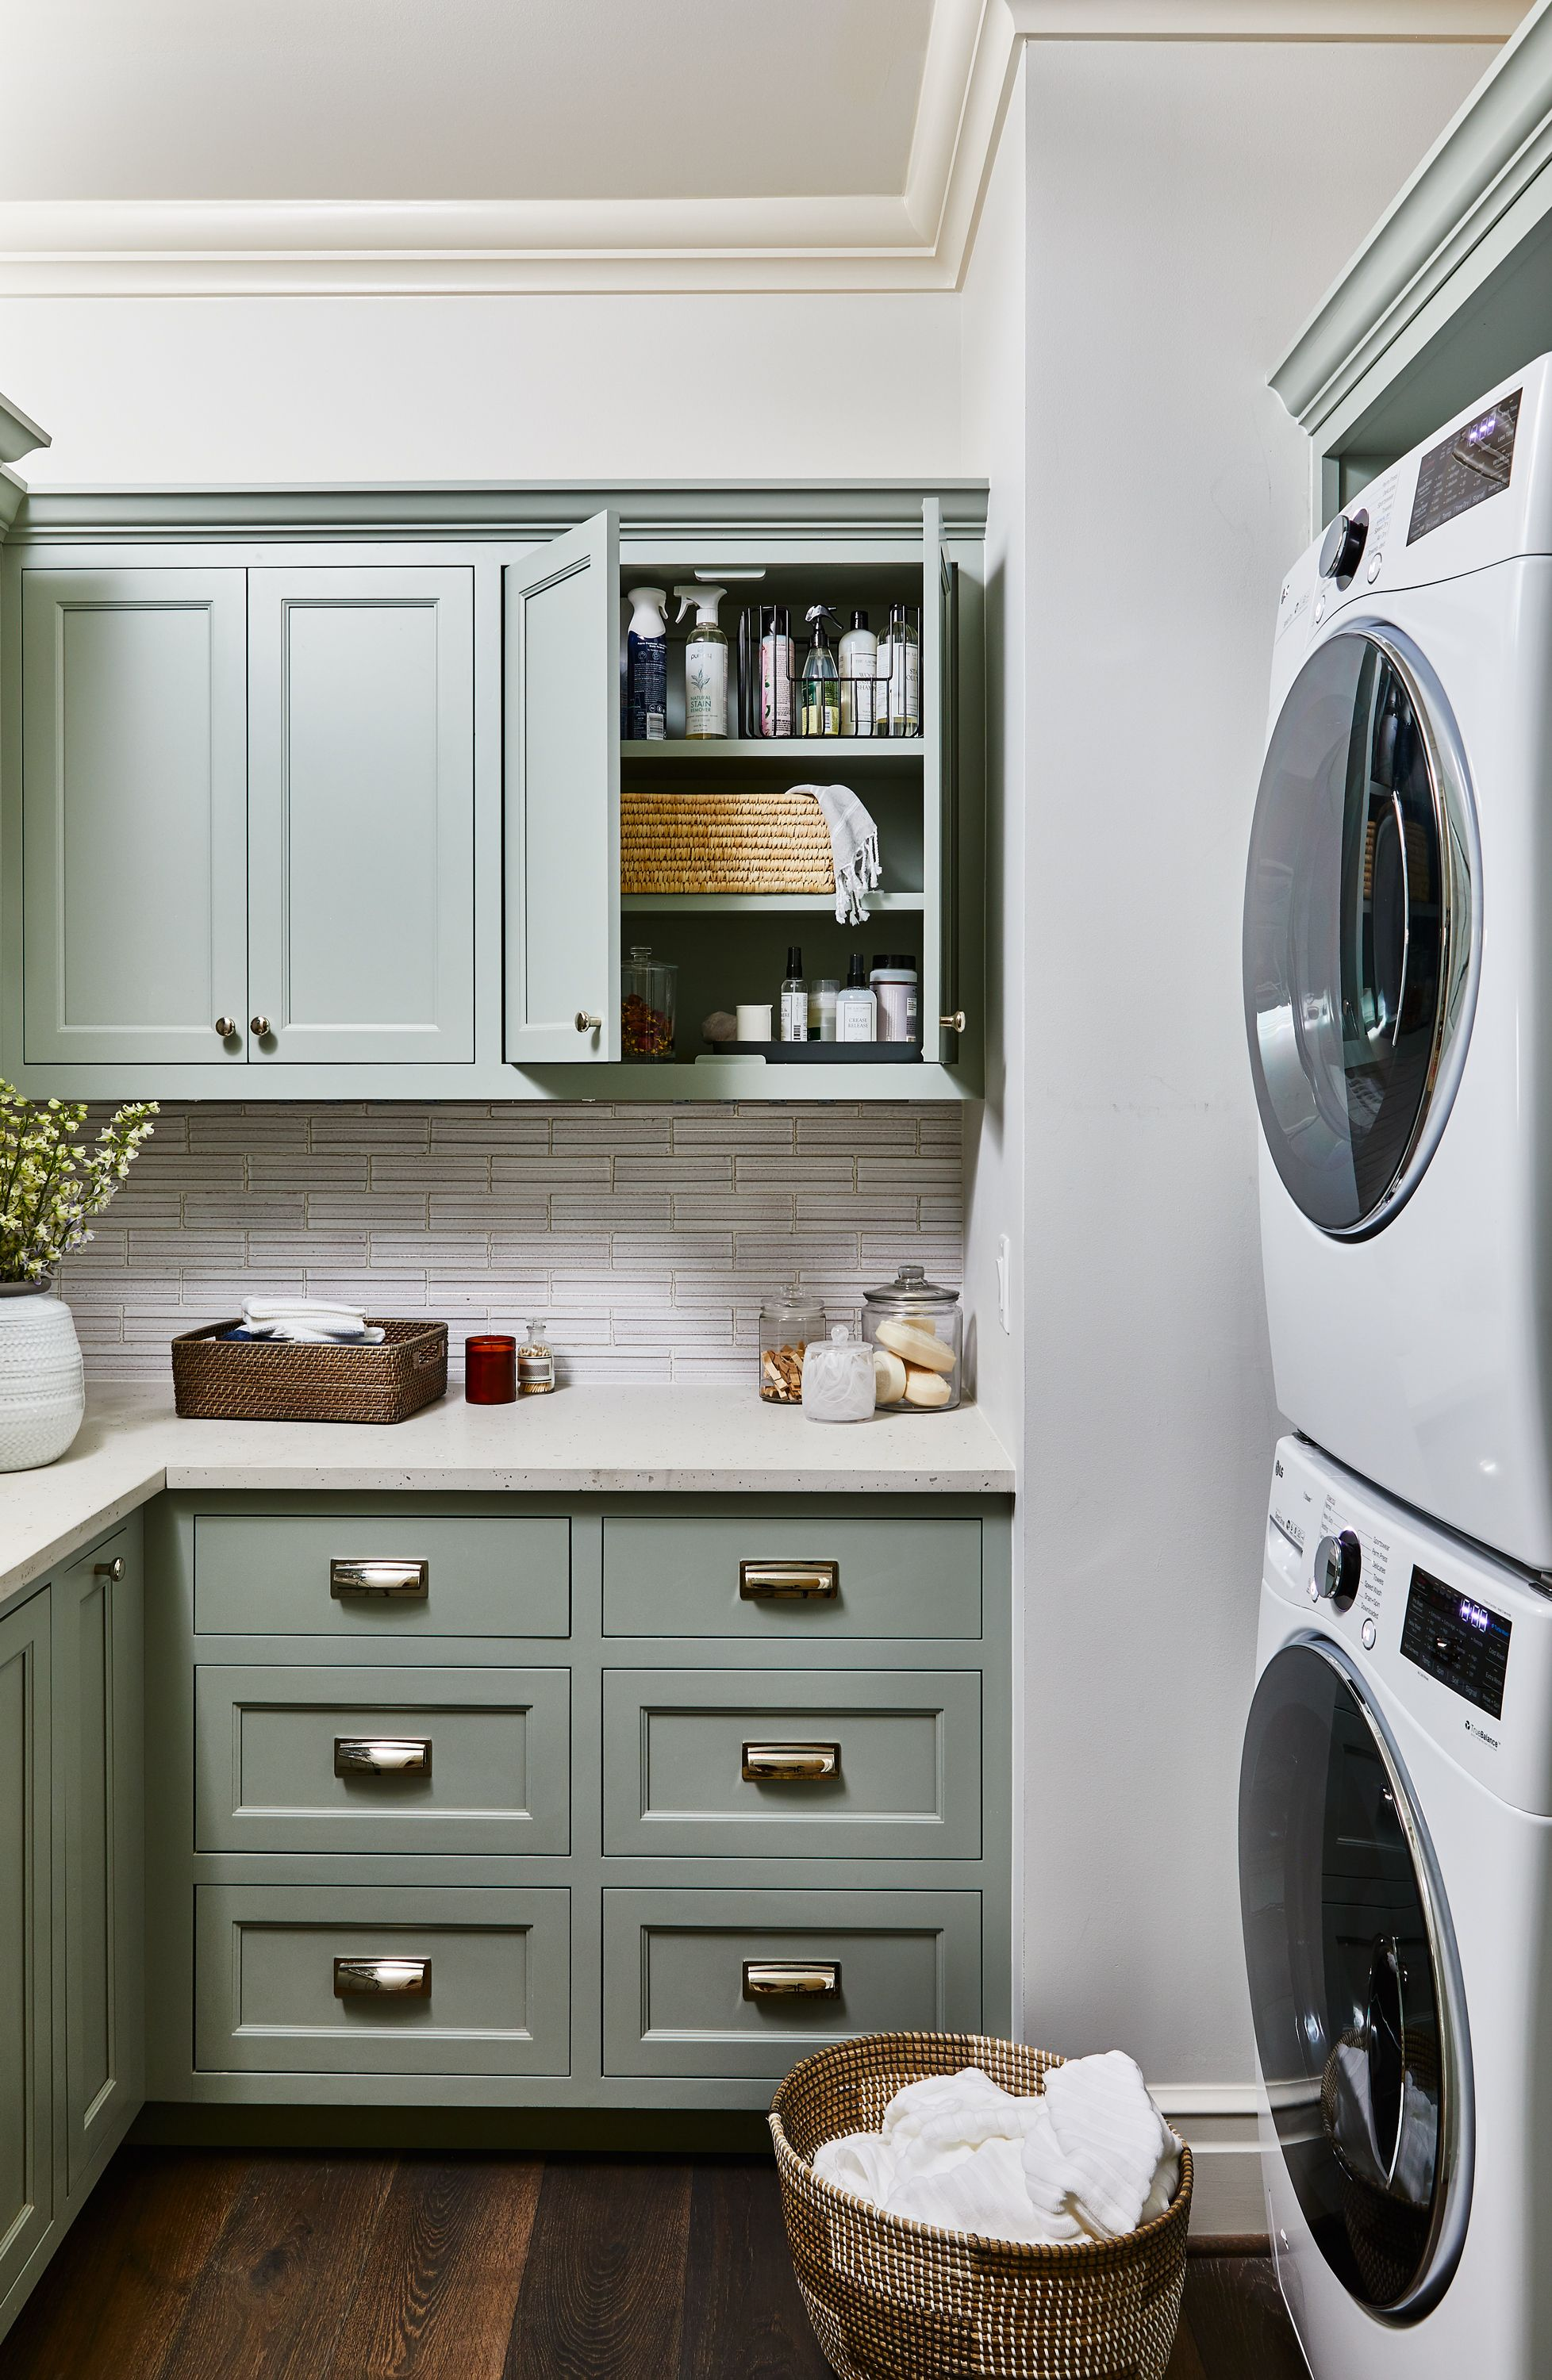 5 Simple Ways To Make The Most Of A Small Laundry Room